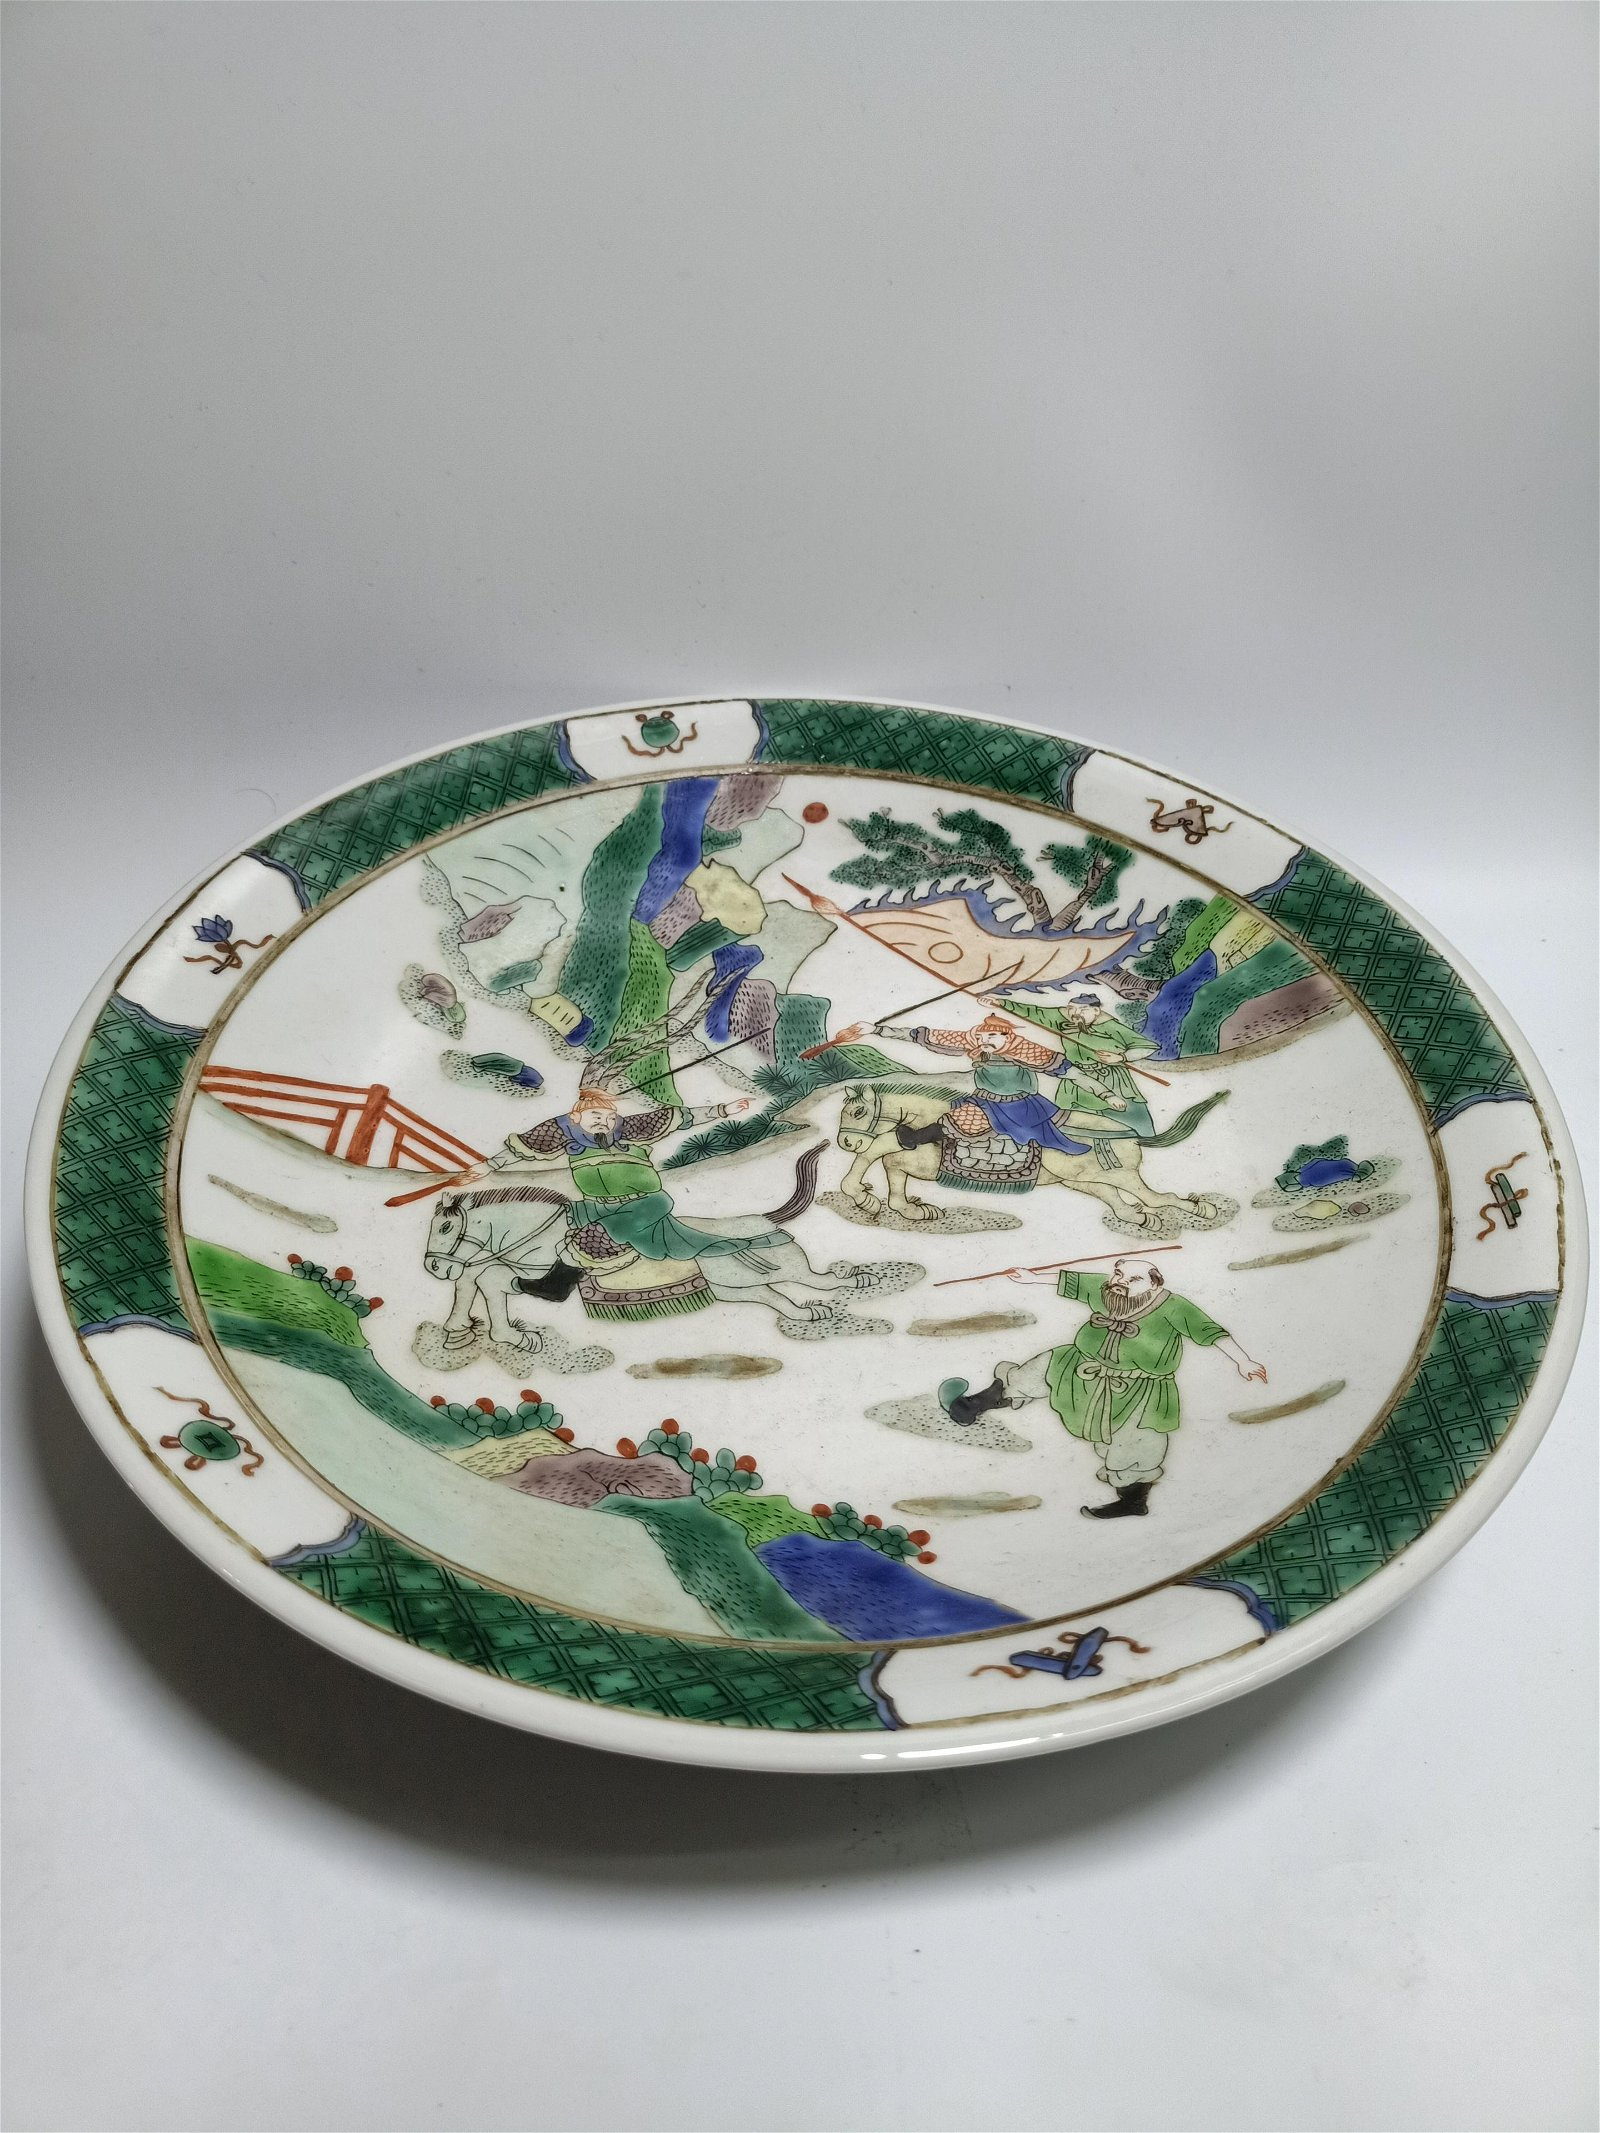 Famille rose figure porcelain plate in Qing Dynasty